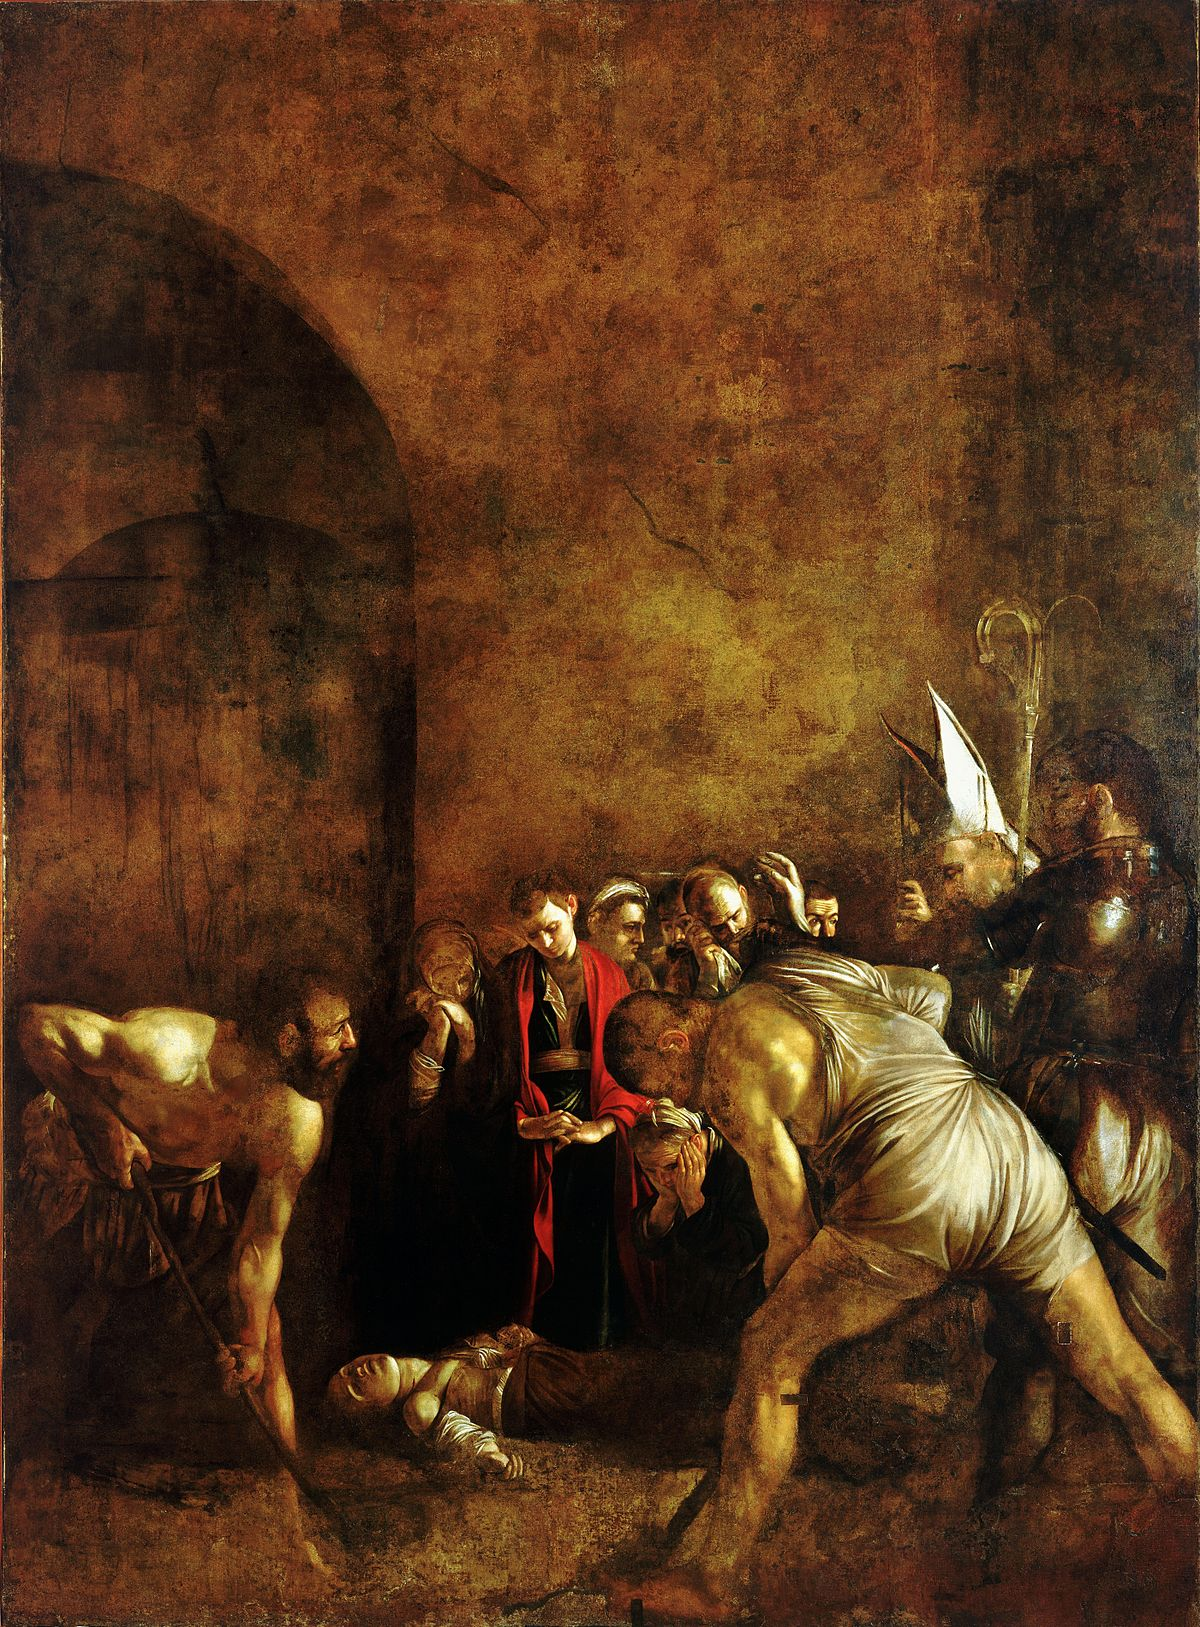 Burial of saint lucy 1608 - by Caravaggio